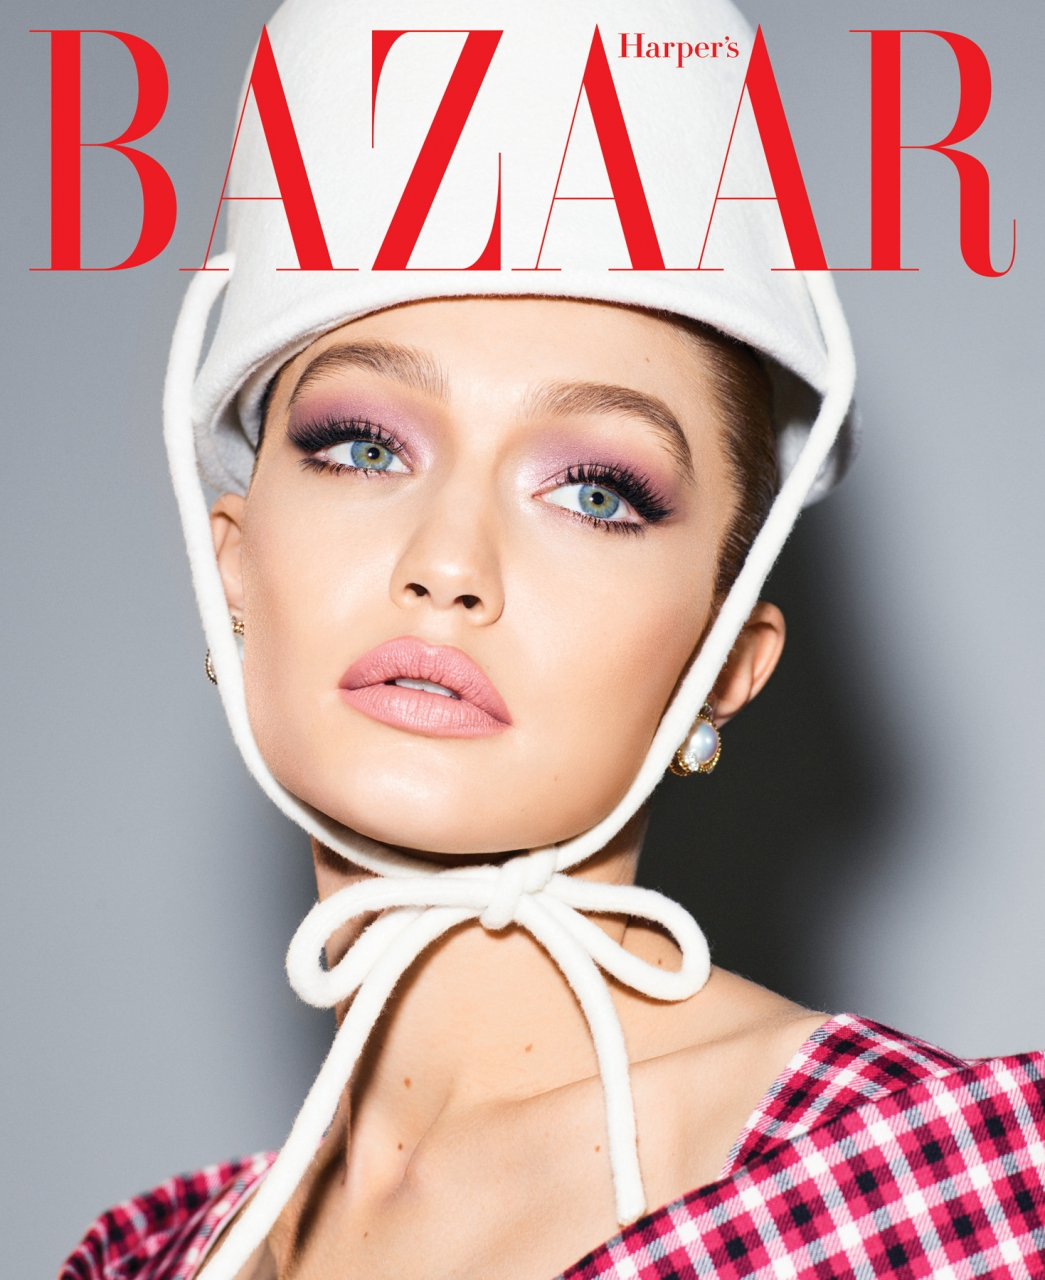 Gigi Hadid for Harper's Bazaar by Mariano Vivanco